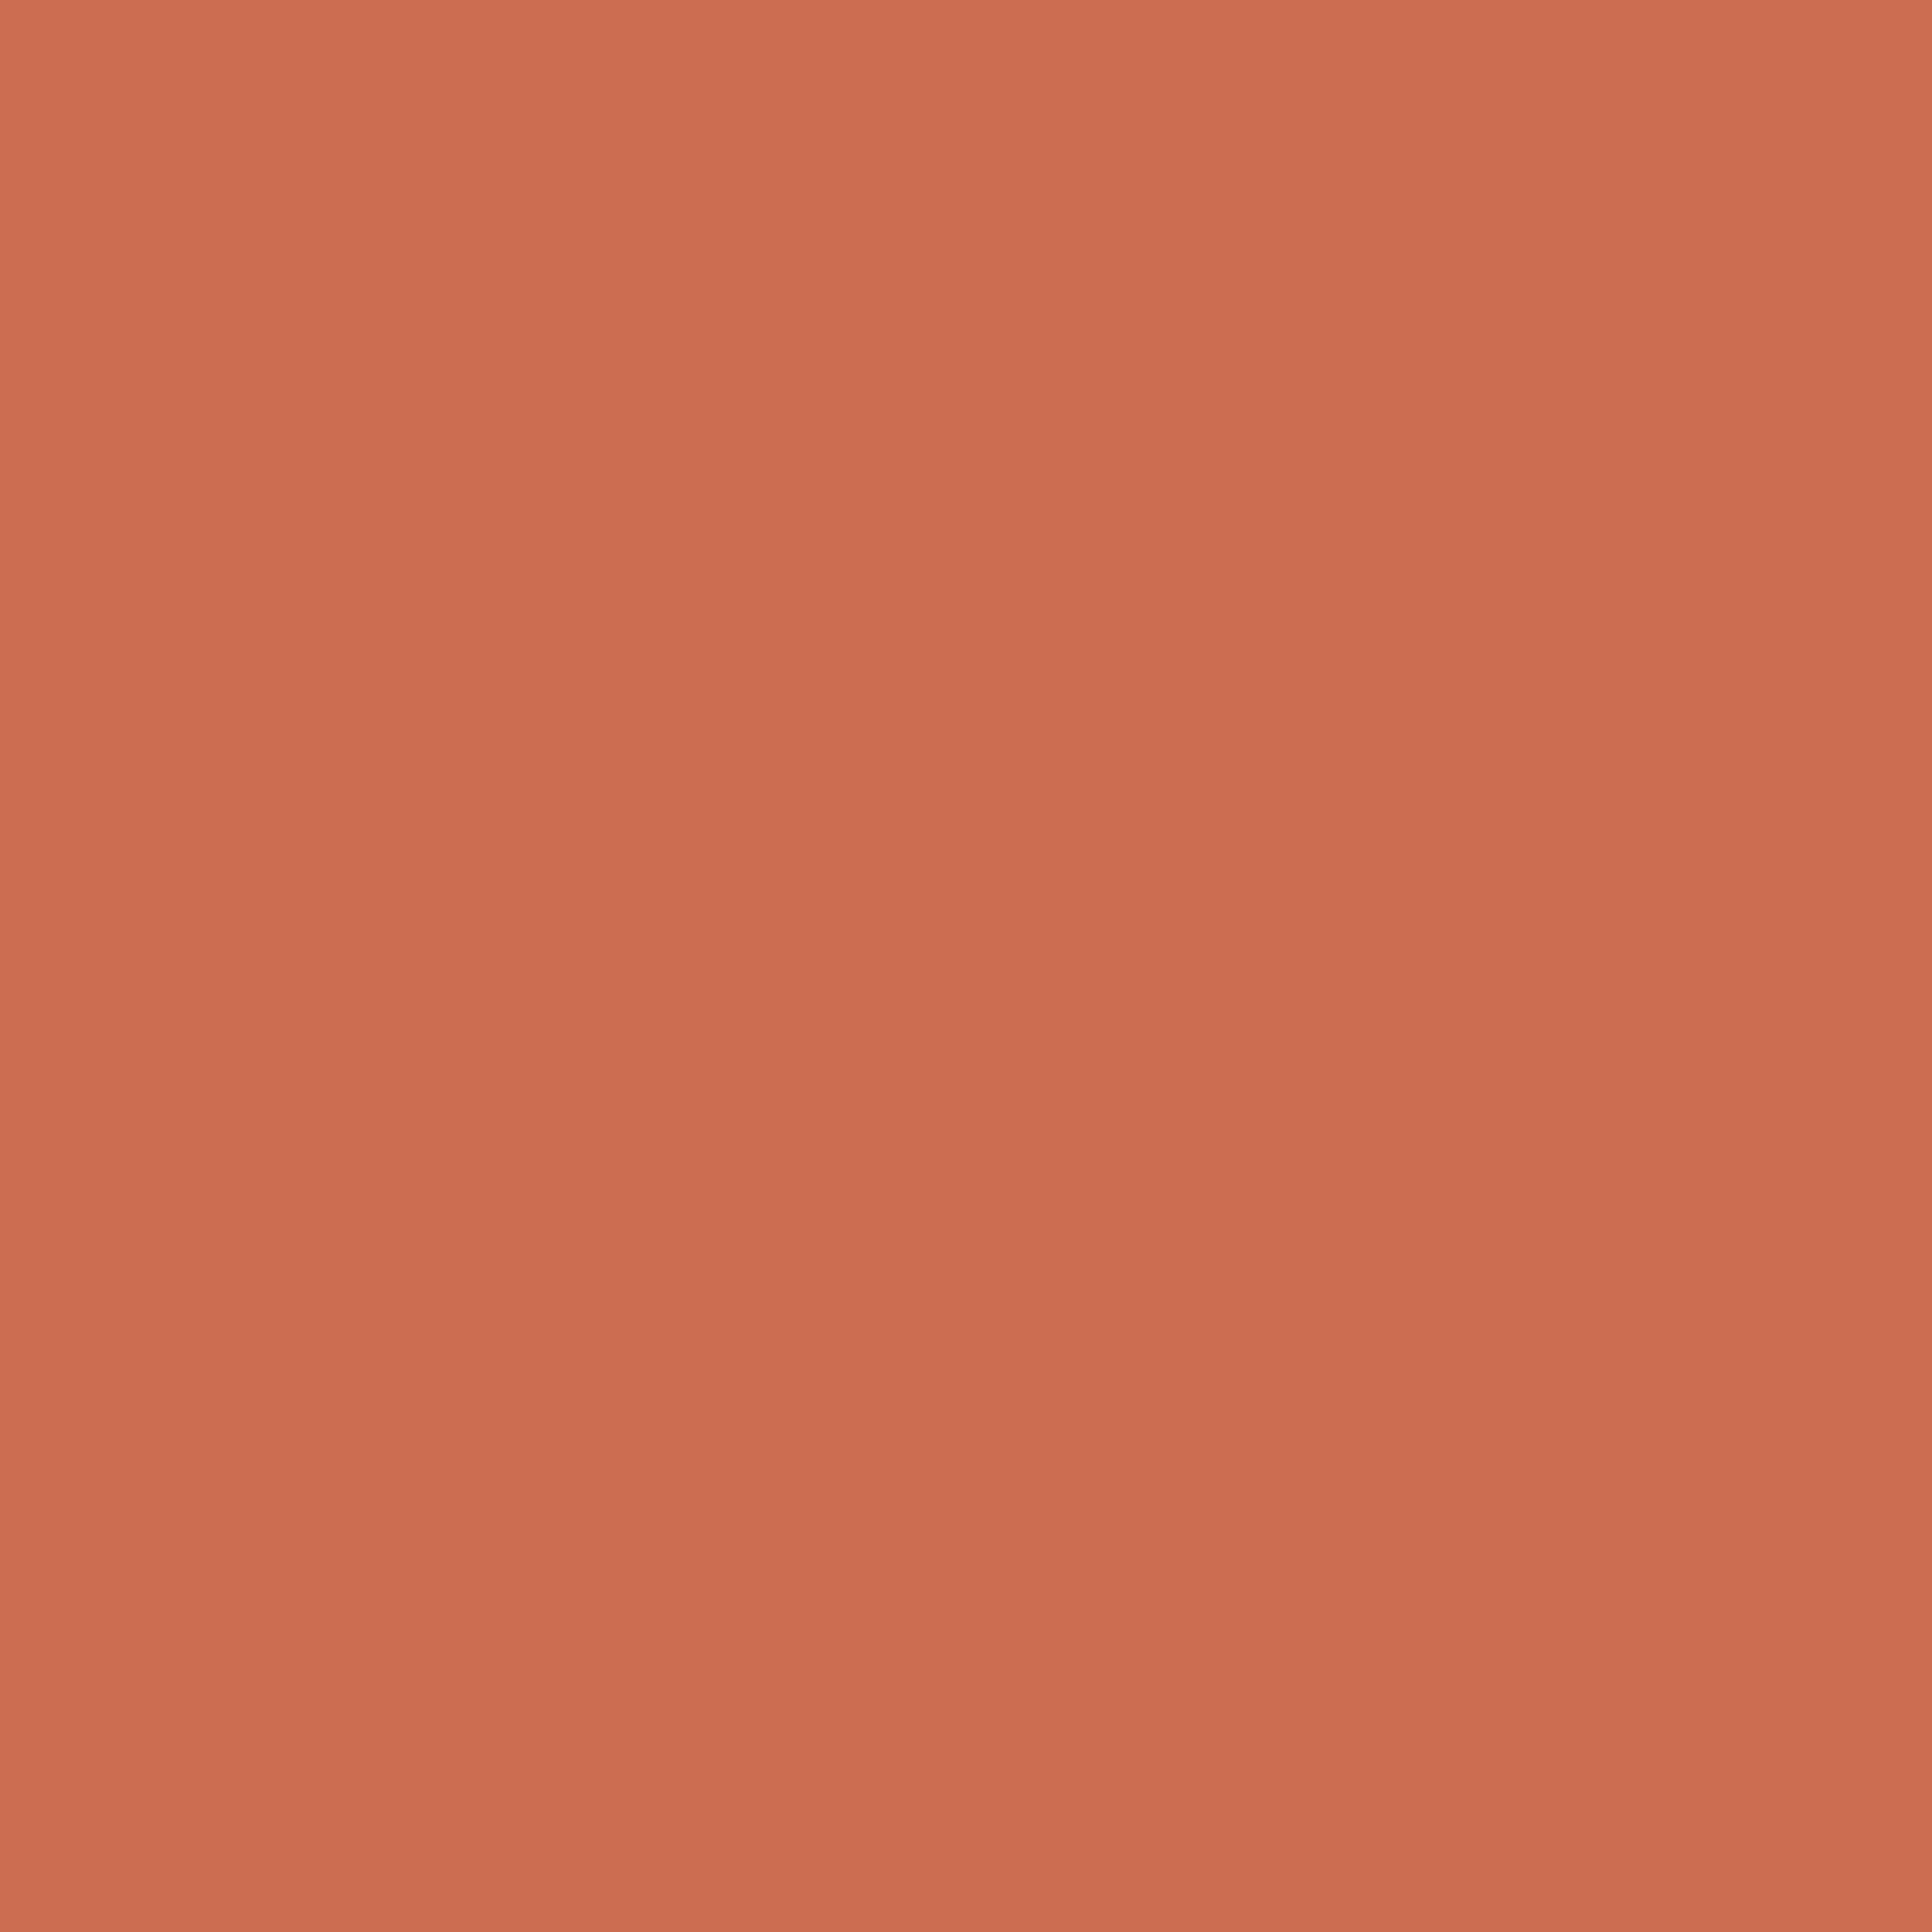 2048x2048 Copper Red Solid Color Background